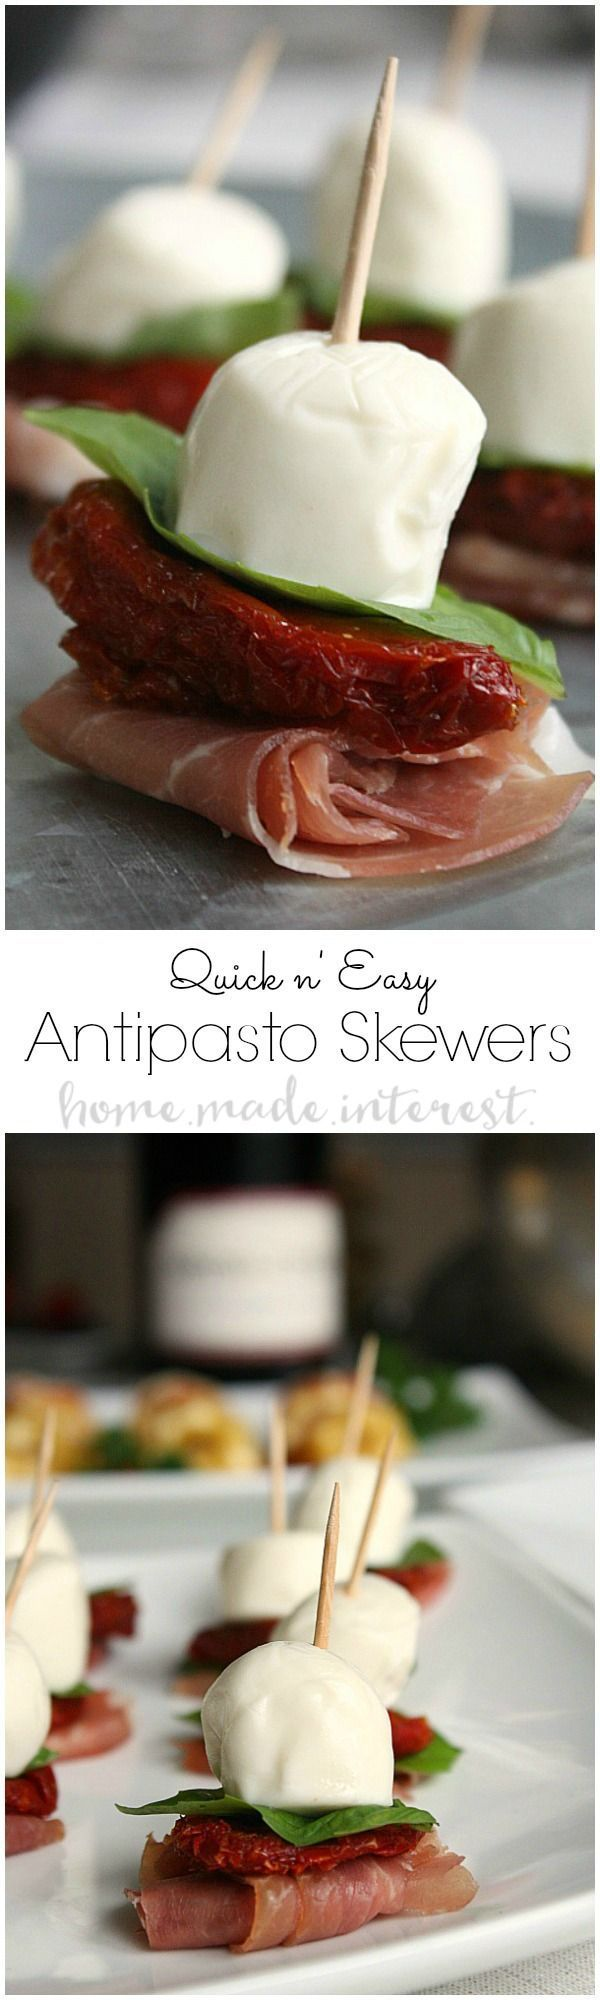 These antipasto skewers are quick to make. They are perfect for any dinner party or an easy New Year's Eve appetizer recipe! More